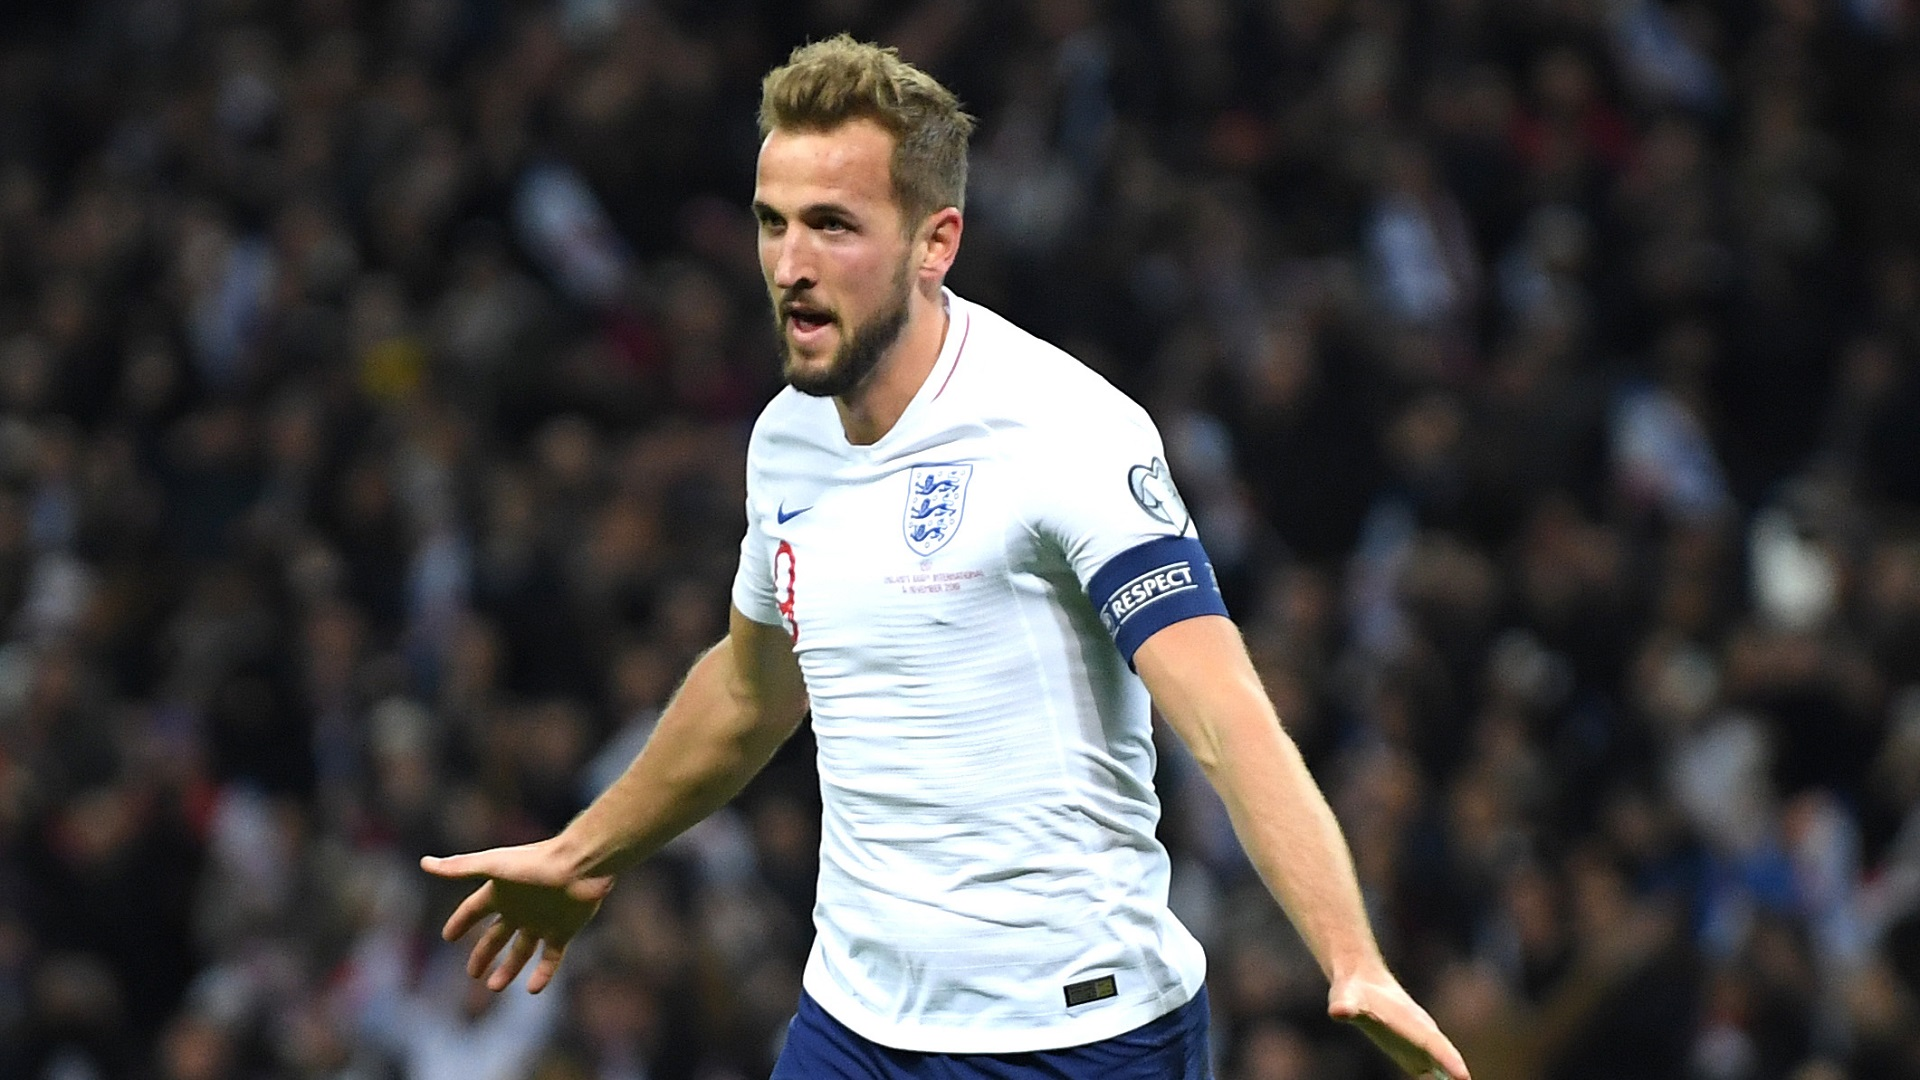 Kane scores again as England beats Kosovo